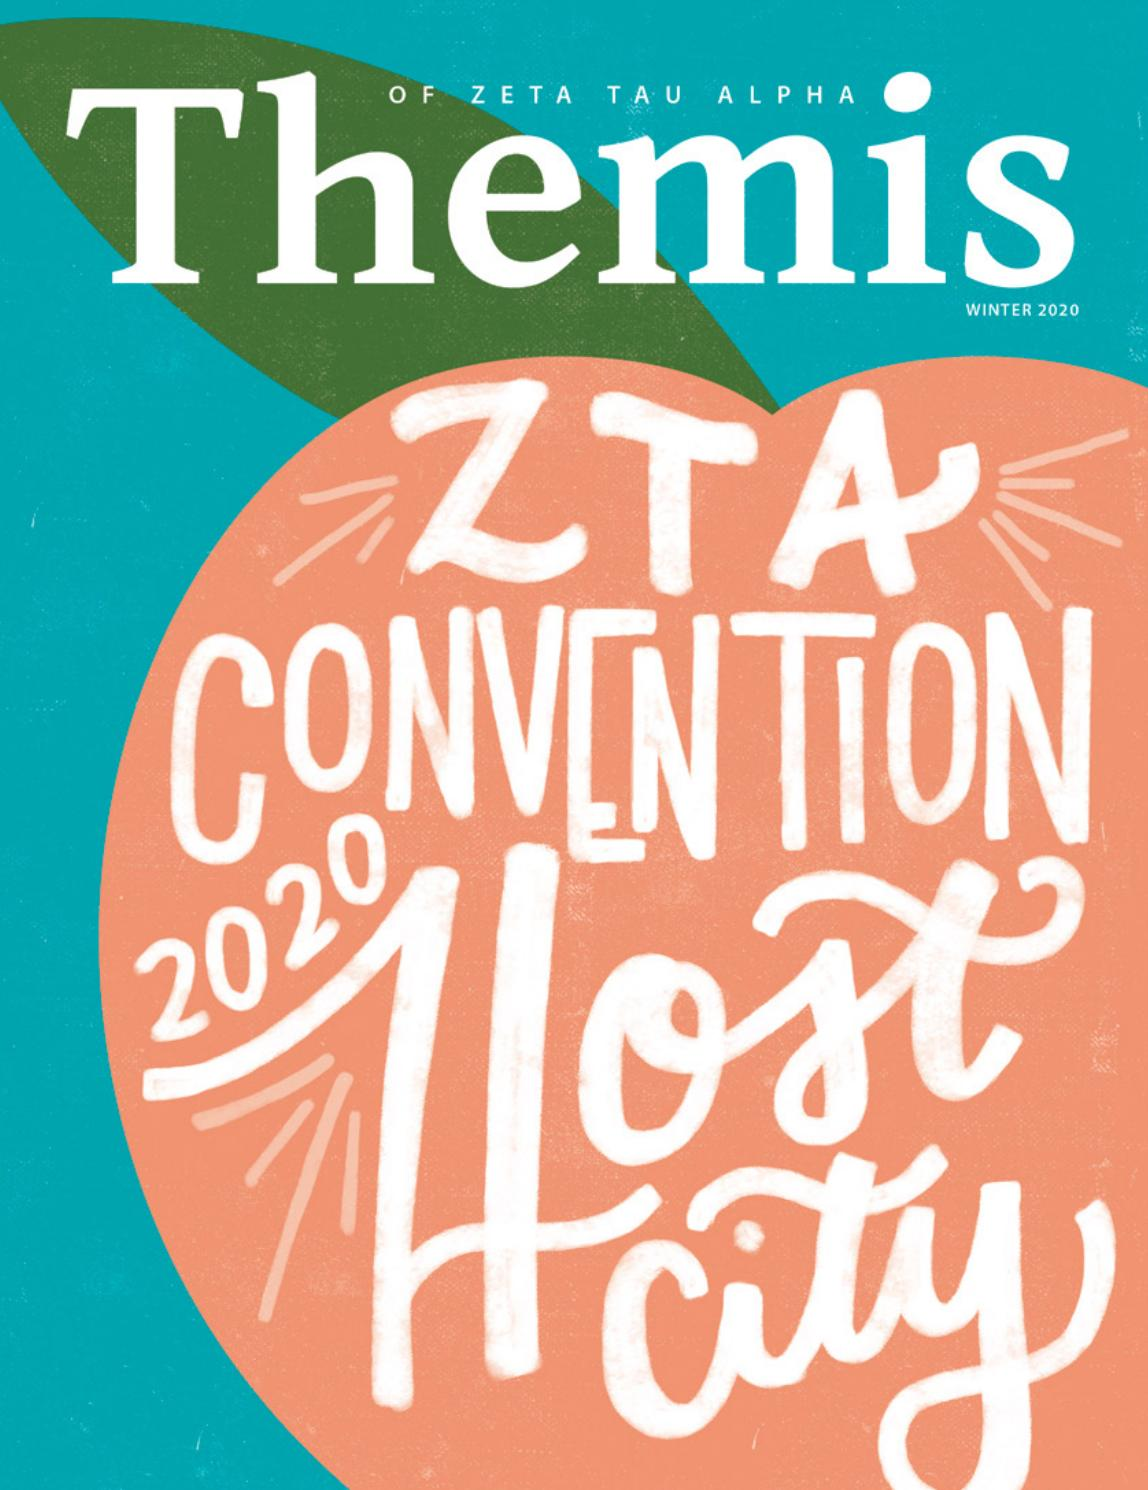 2020-2022 Pontiac Christmas Tournament Winner Themis—Winter 2020 by Zeta Tau Alpha   issuu